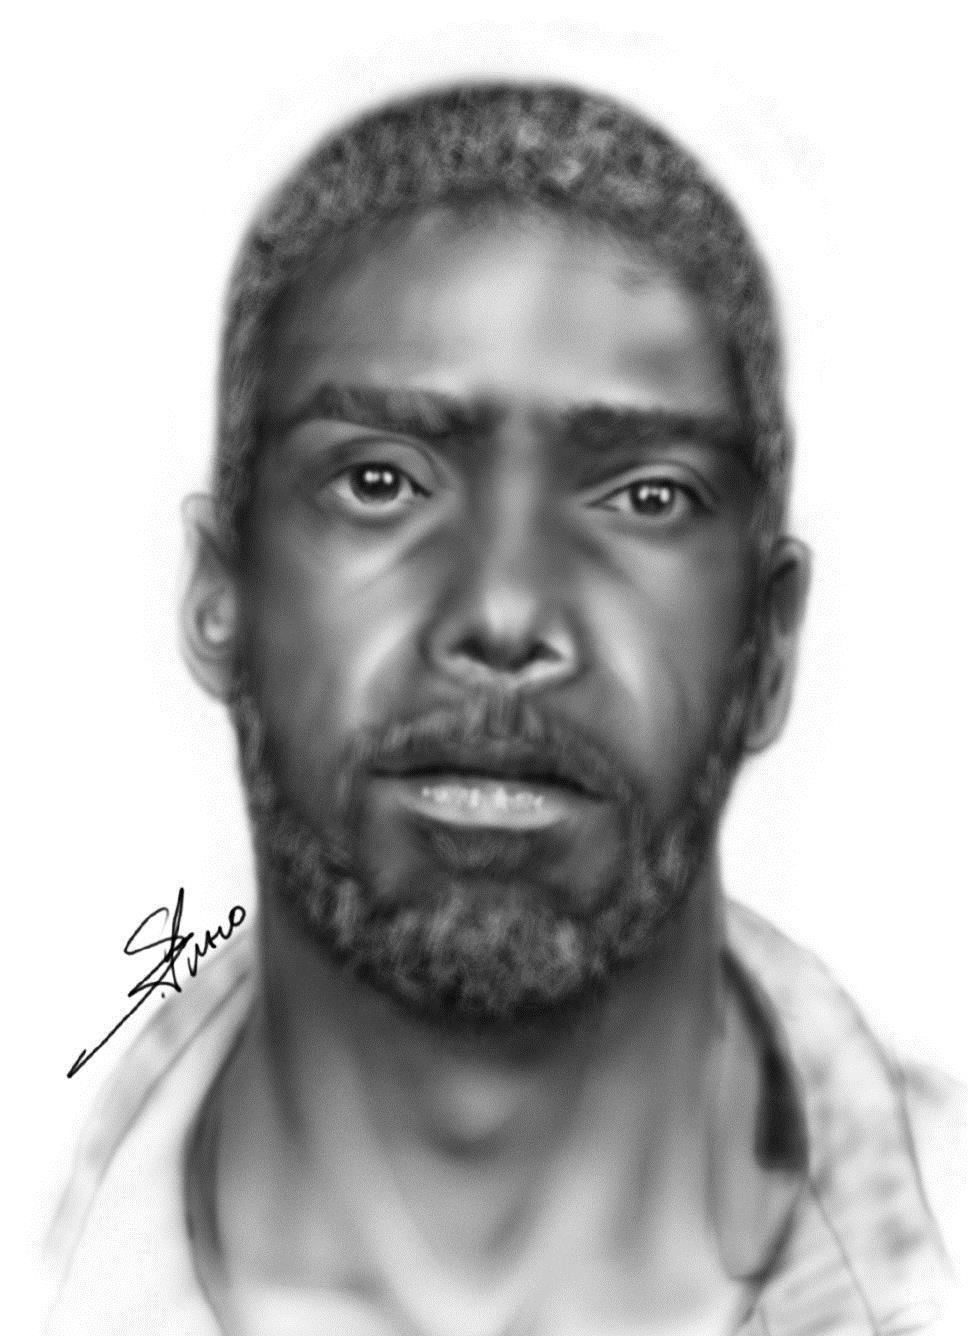 The Orange County Sheriff's Office released this sketch of the carjacking suspect.